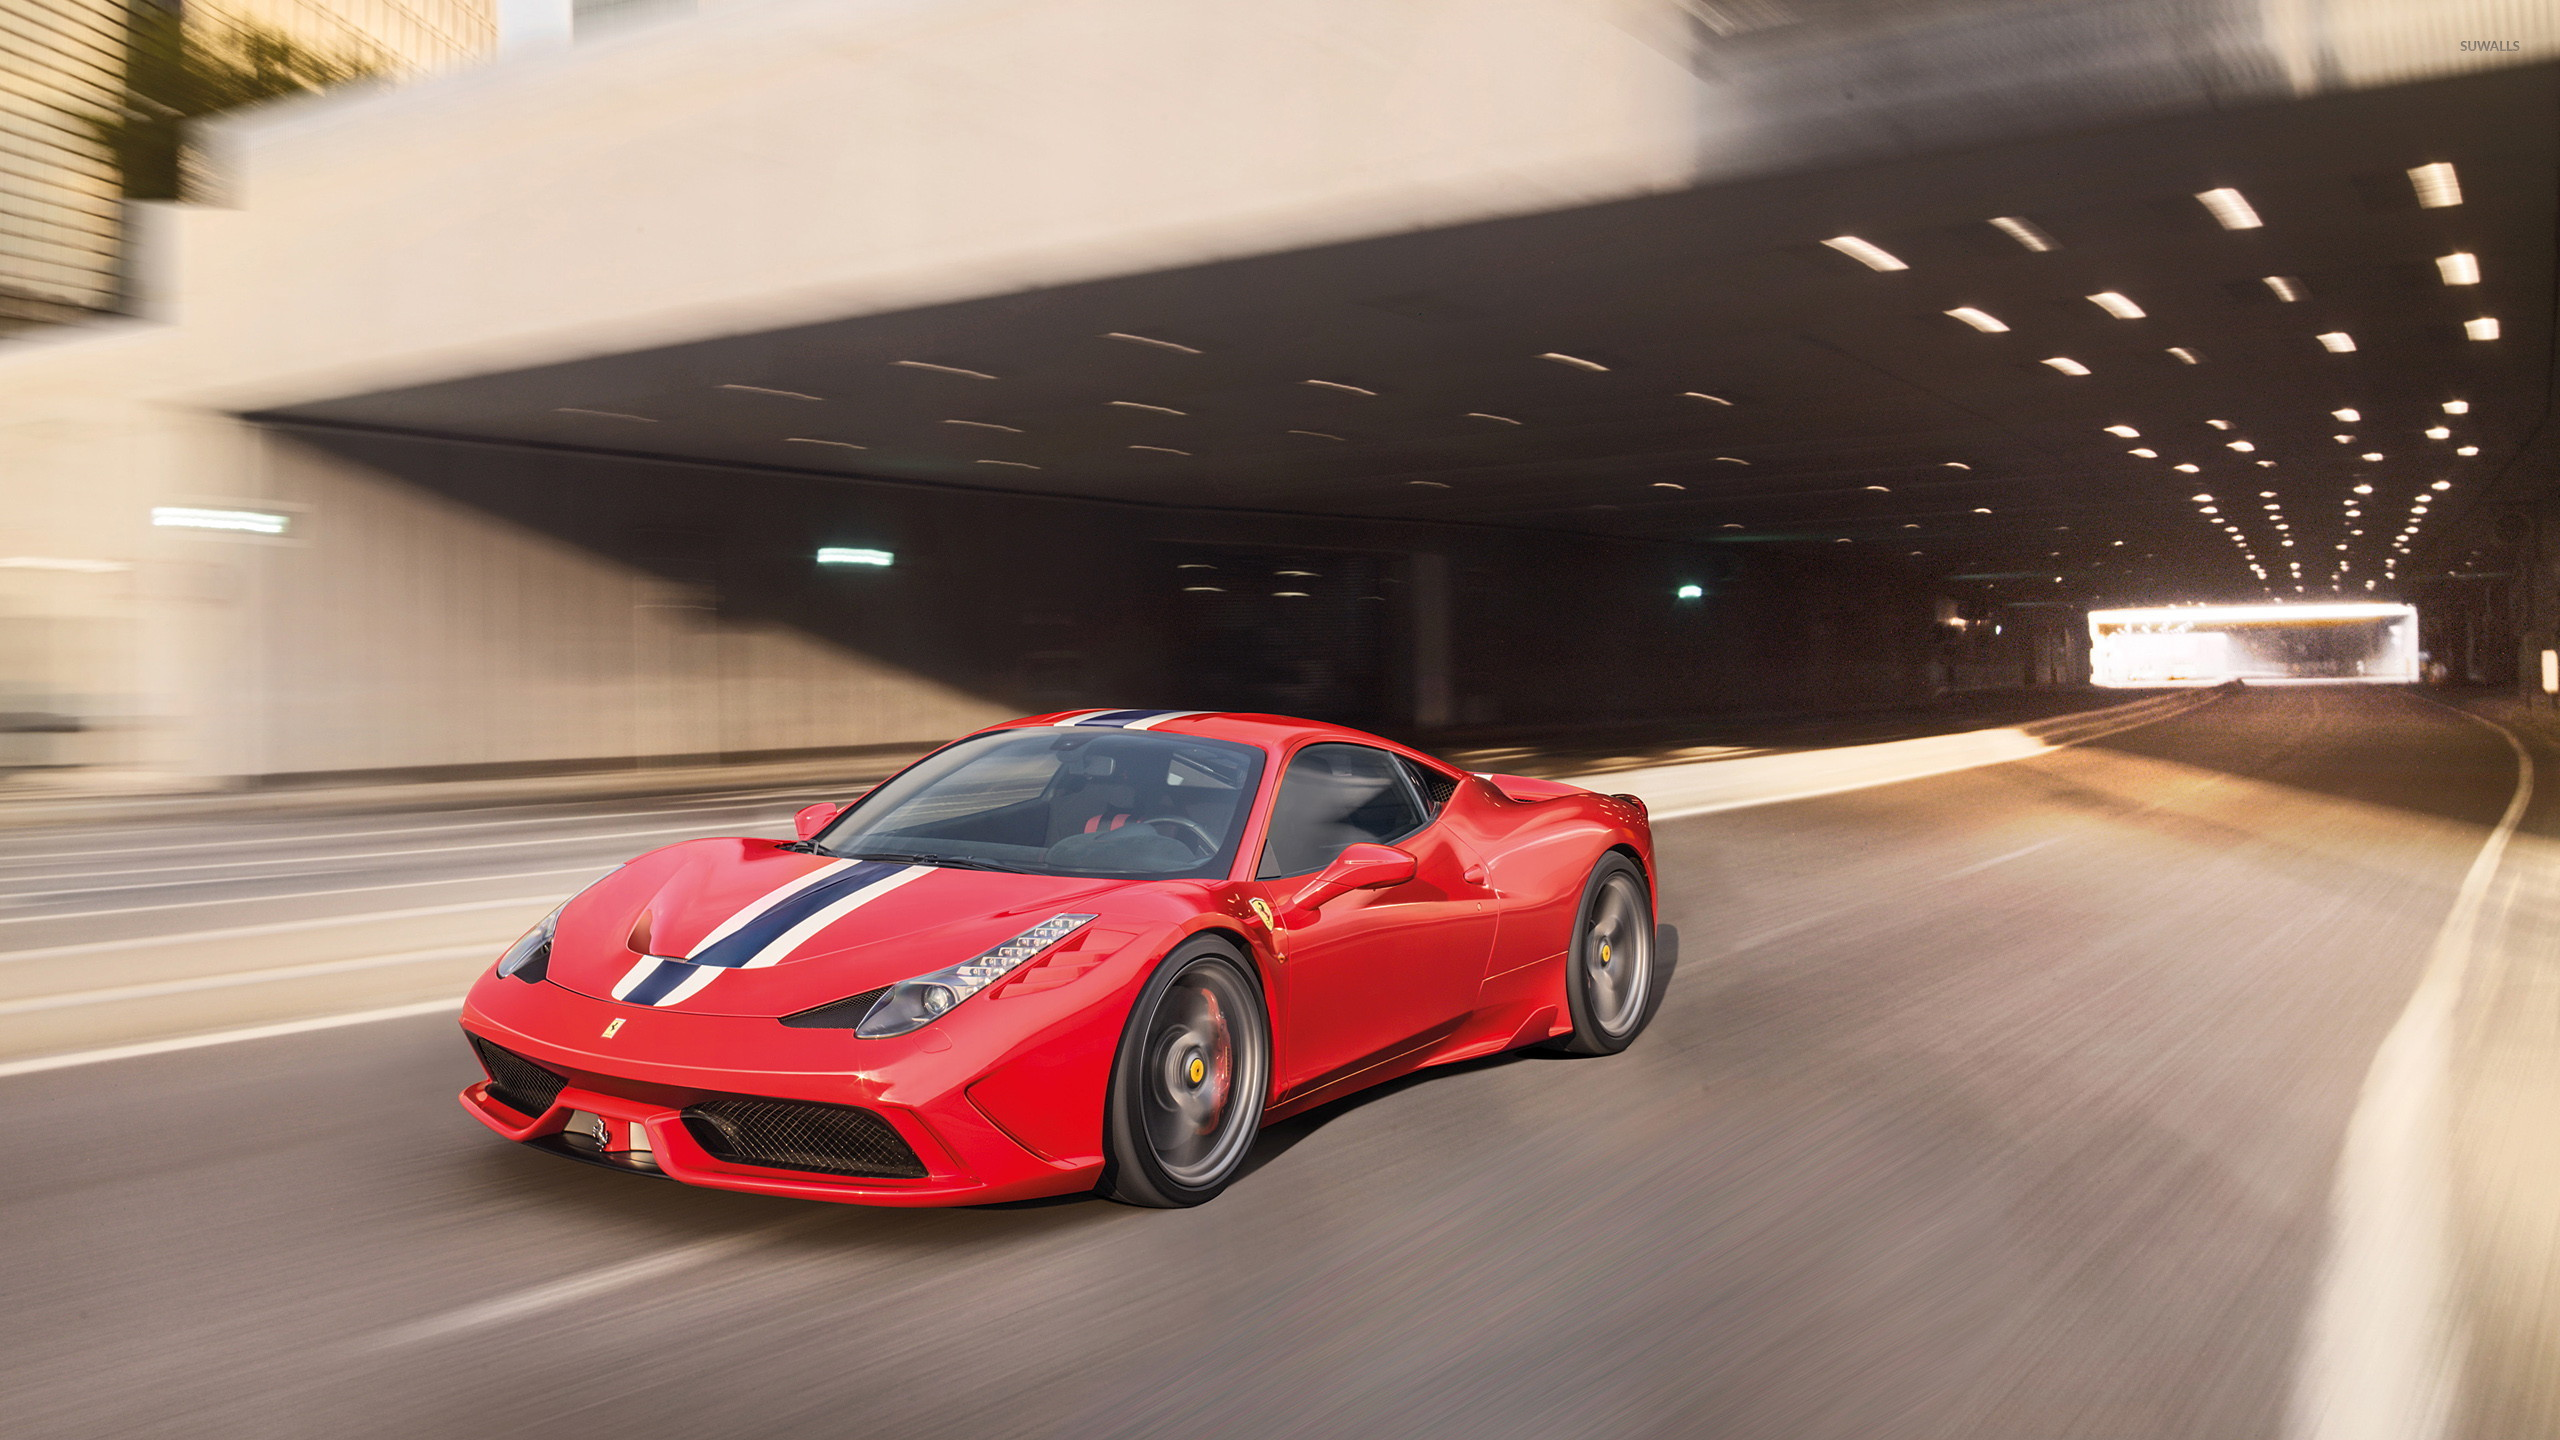 Ferrari 458 Speciale 2 Wallpaper Car Wallpapers 30907